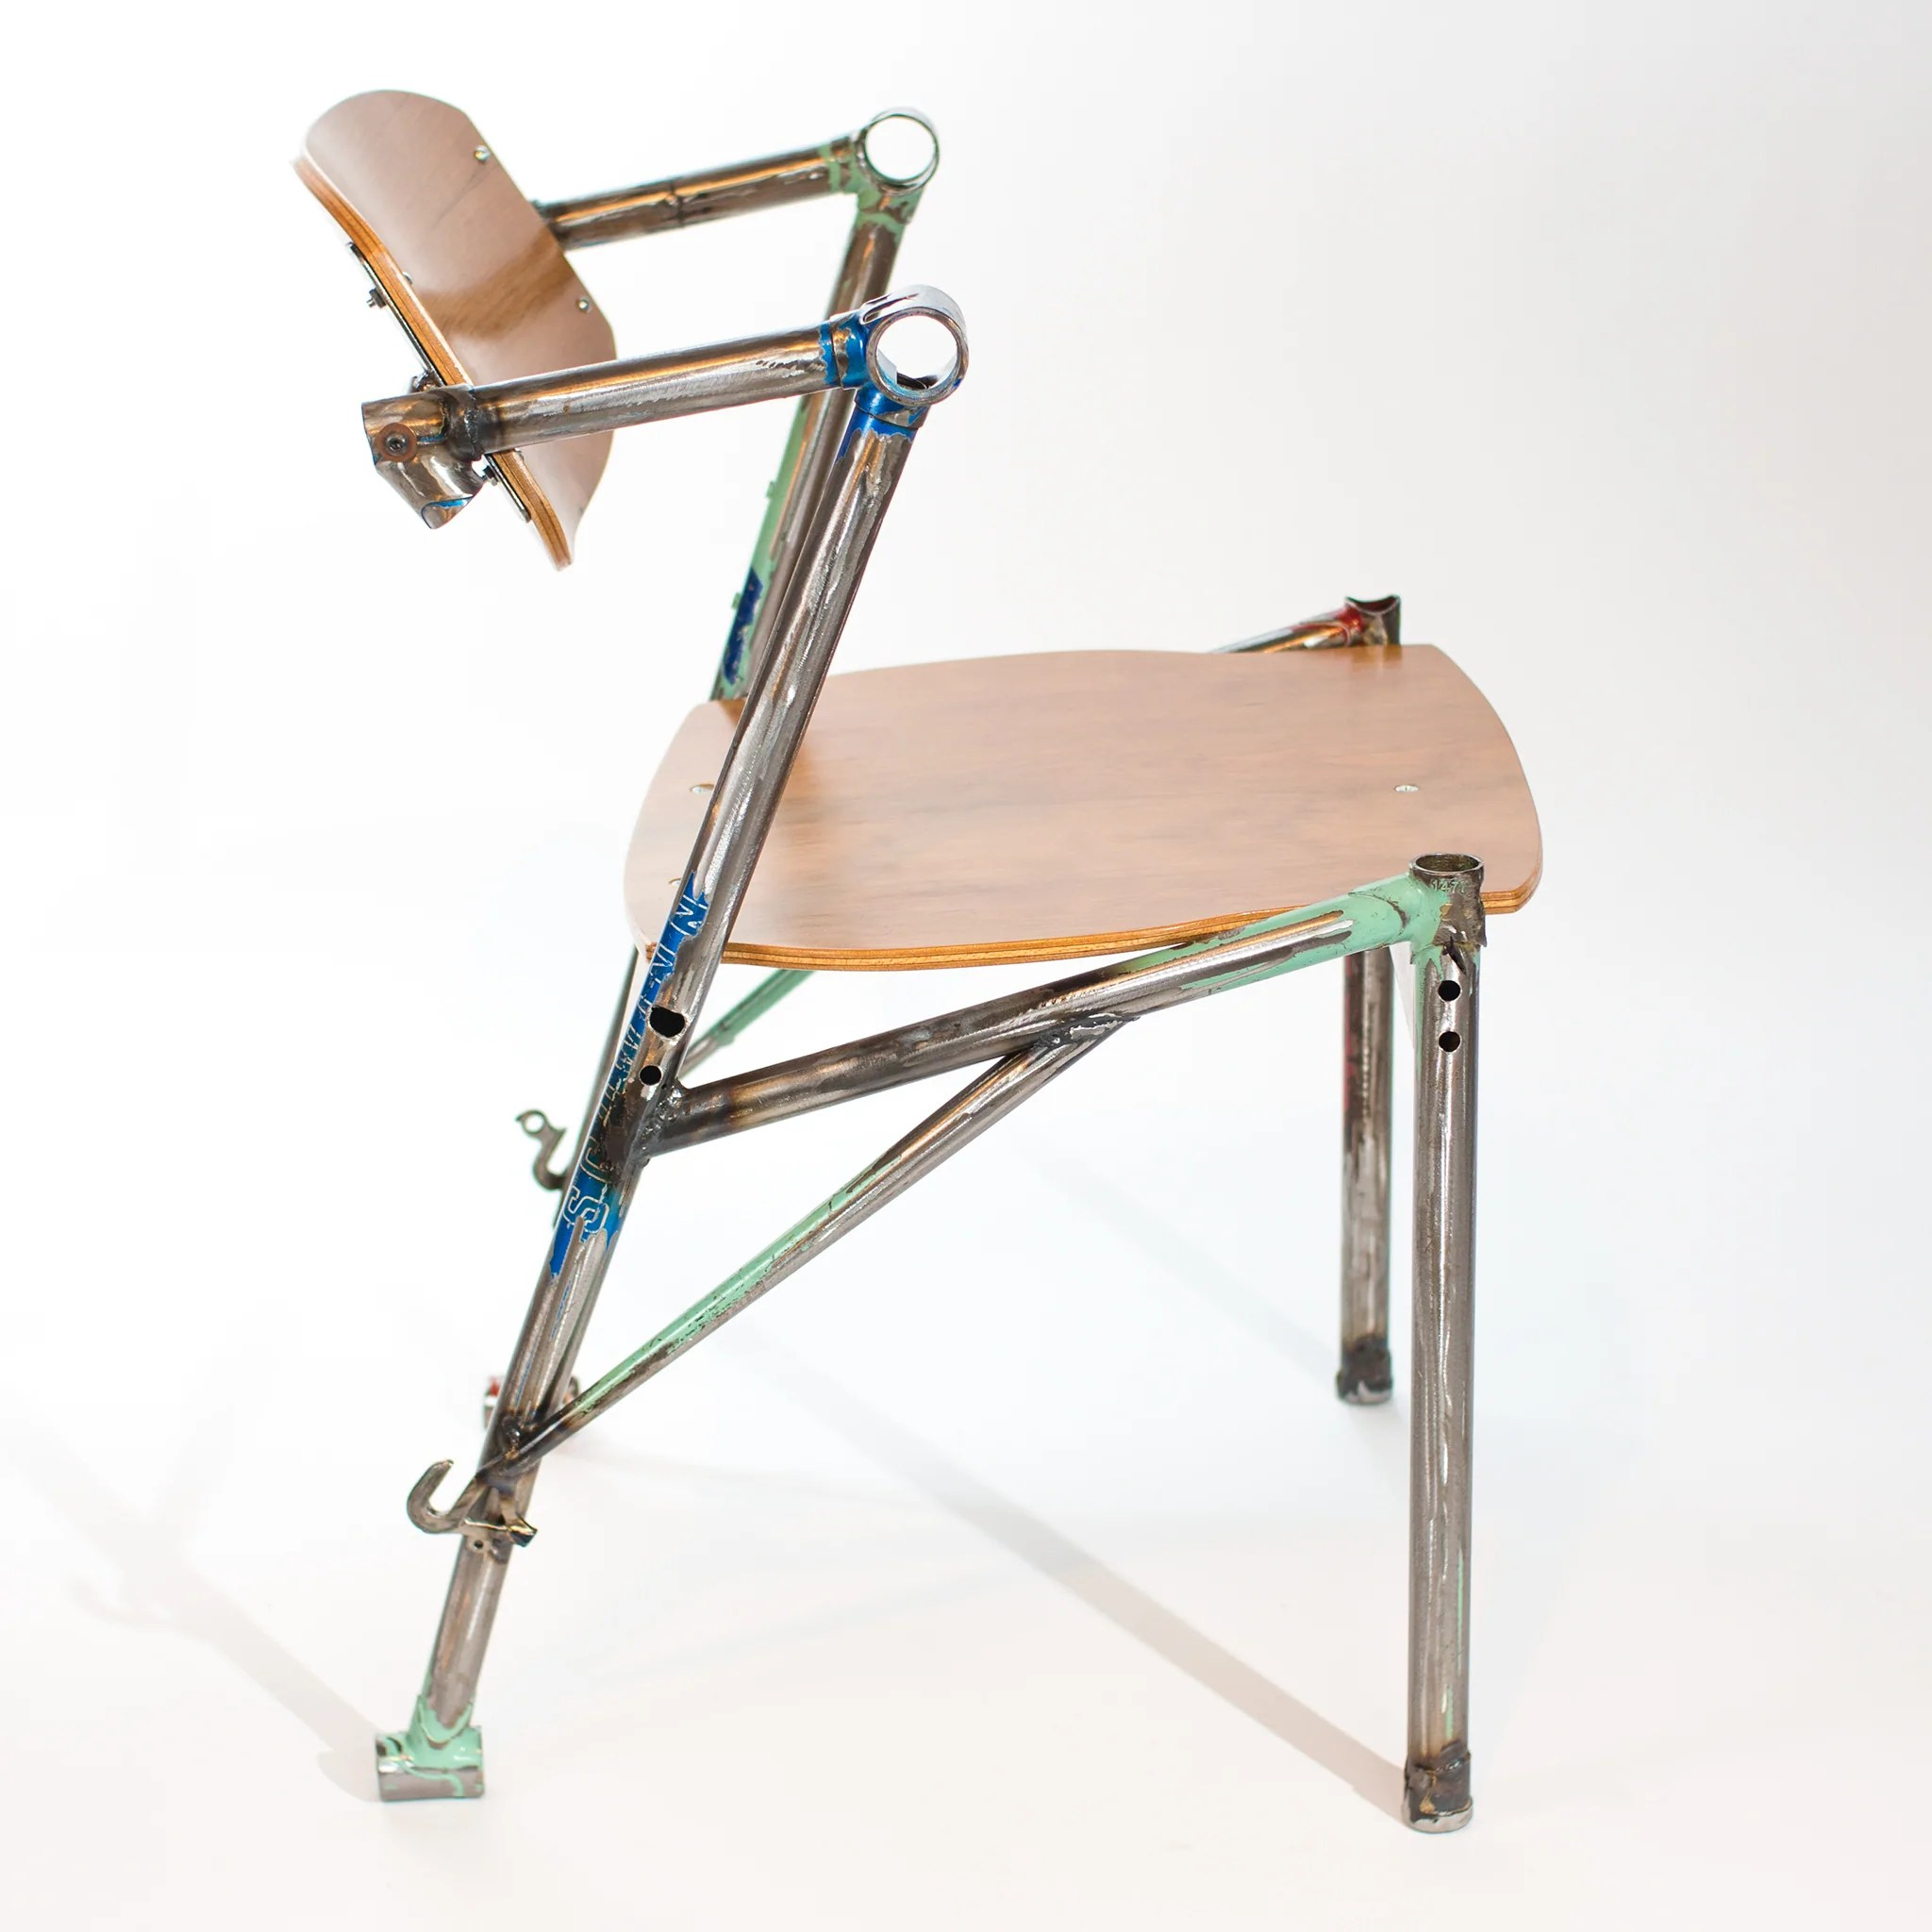 Plywood Furniture Eric Blanpied Furniture Bike Z Chair Recycled Bicycle Frames